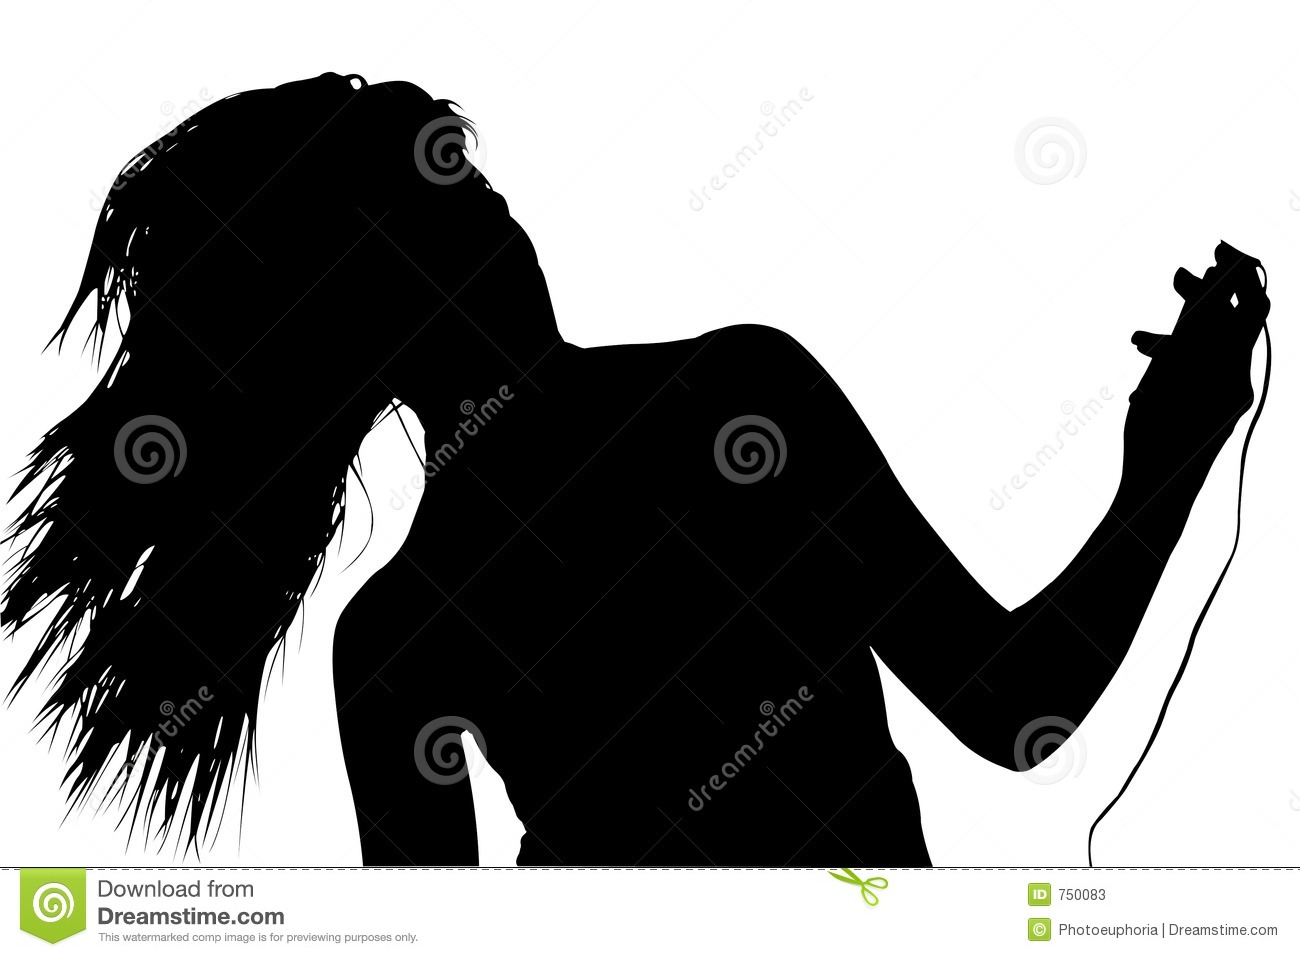 Silhouette with clipping path of woman with digital music player